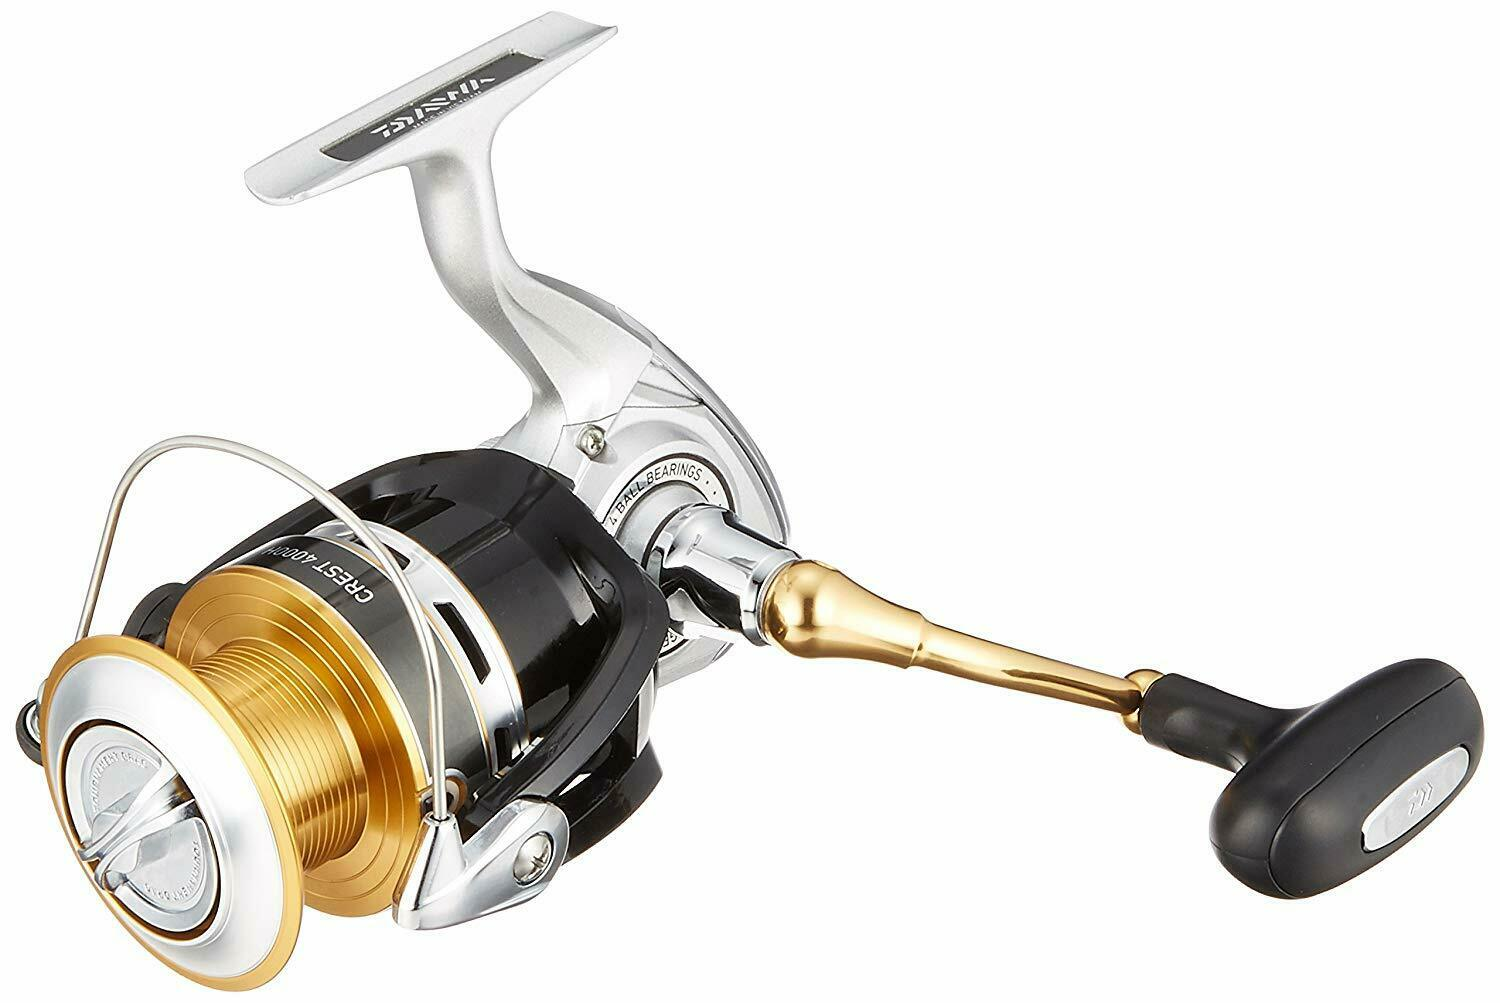 Daiwa Spinning Reel 16 CREST 4000H Fishing Tool New from Japan